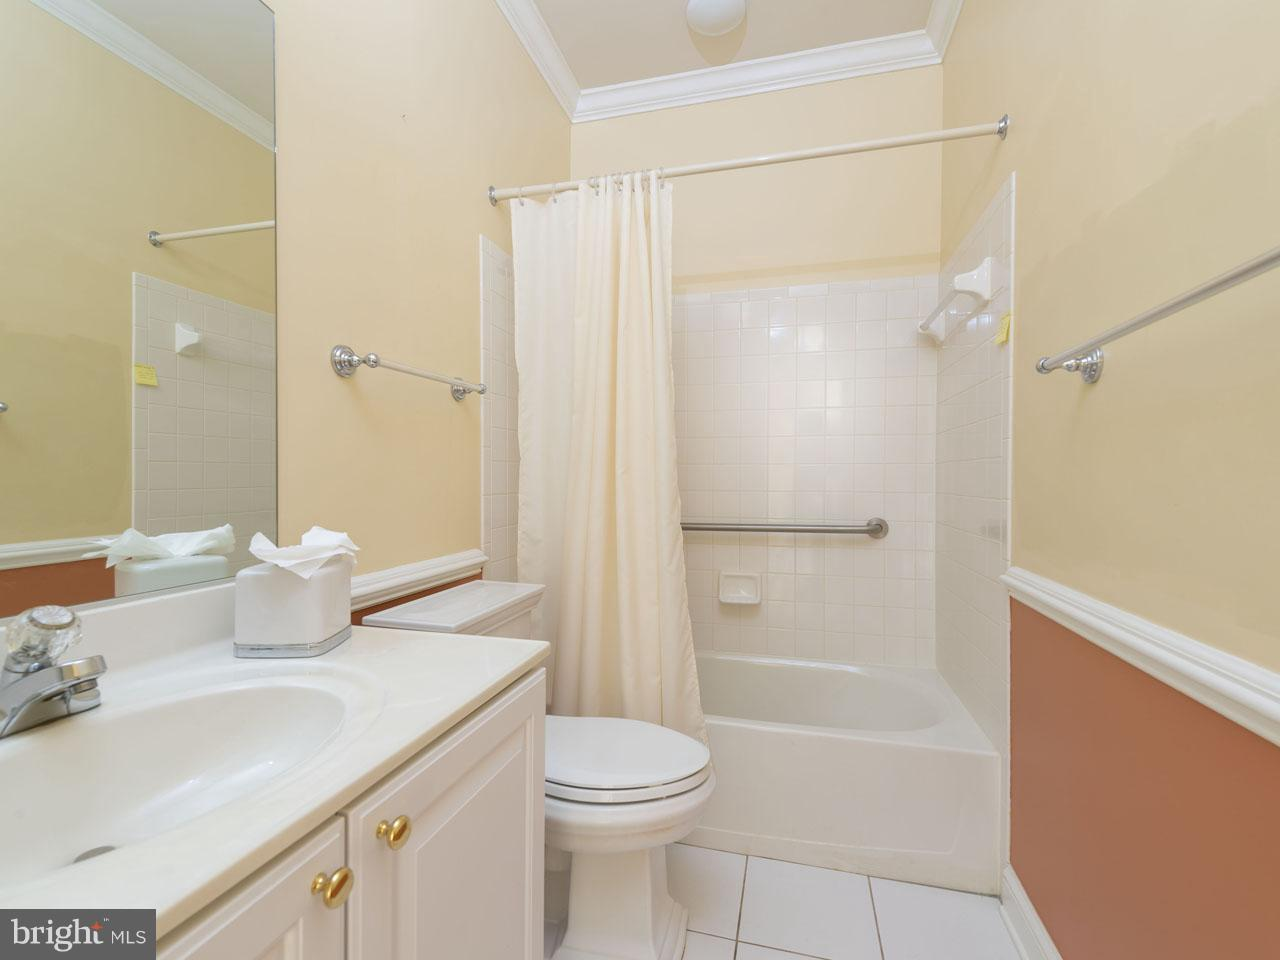 1005040466-300638082065-2021-07-22-06-45-09        Gainesville Delaware Real Estate For Sale   MLS# 1005040466  - Best of Northern Virginia